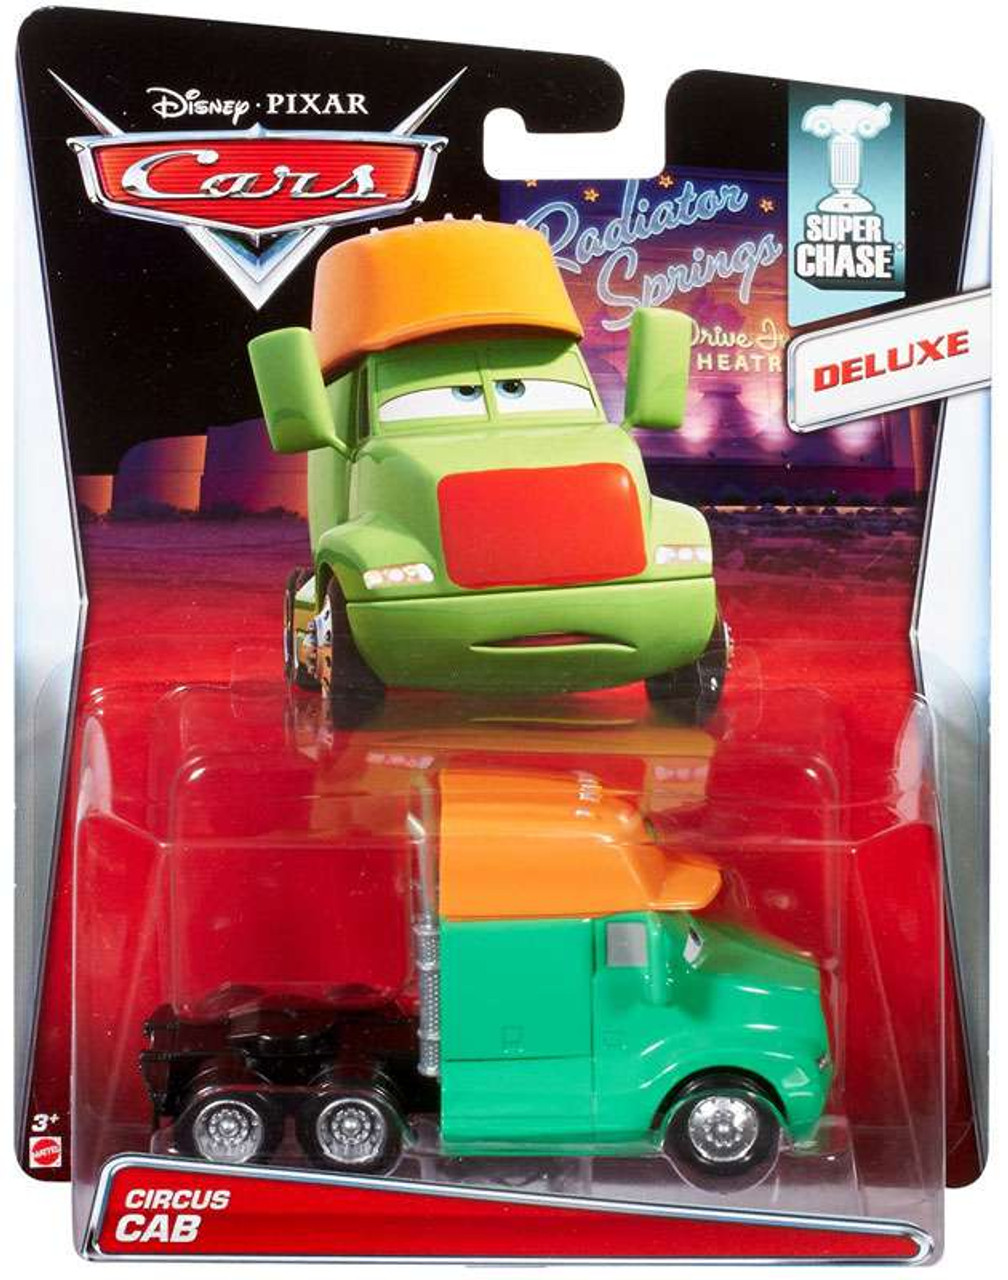 J Combined Postage Super Chase New Release Low Lee DISNEY CARS DIECAST